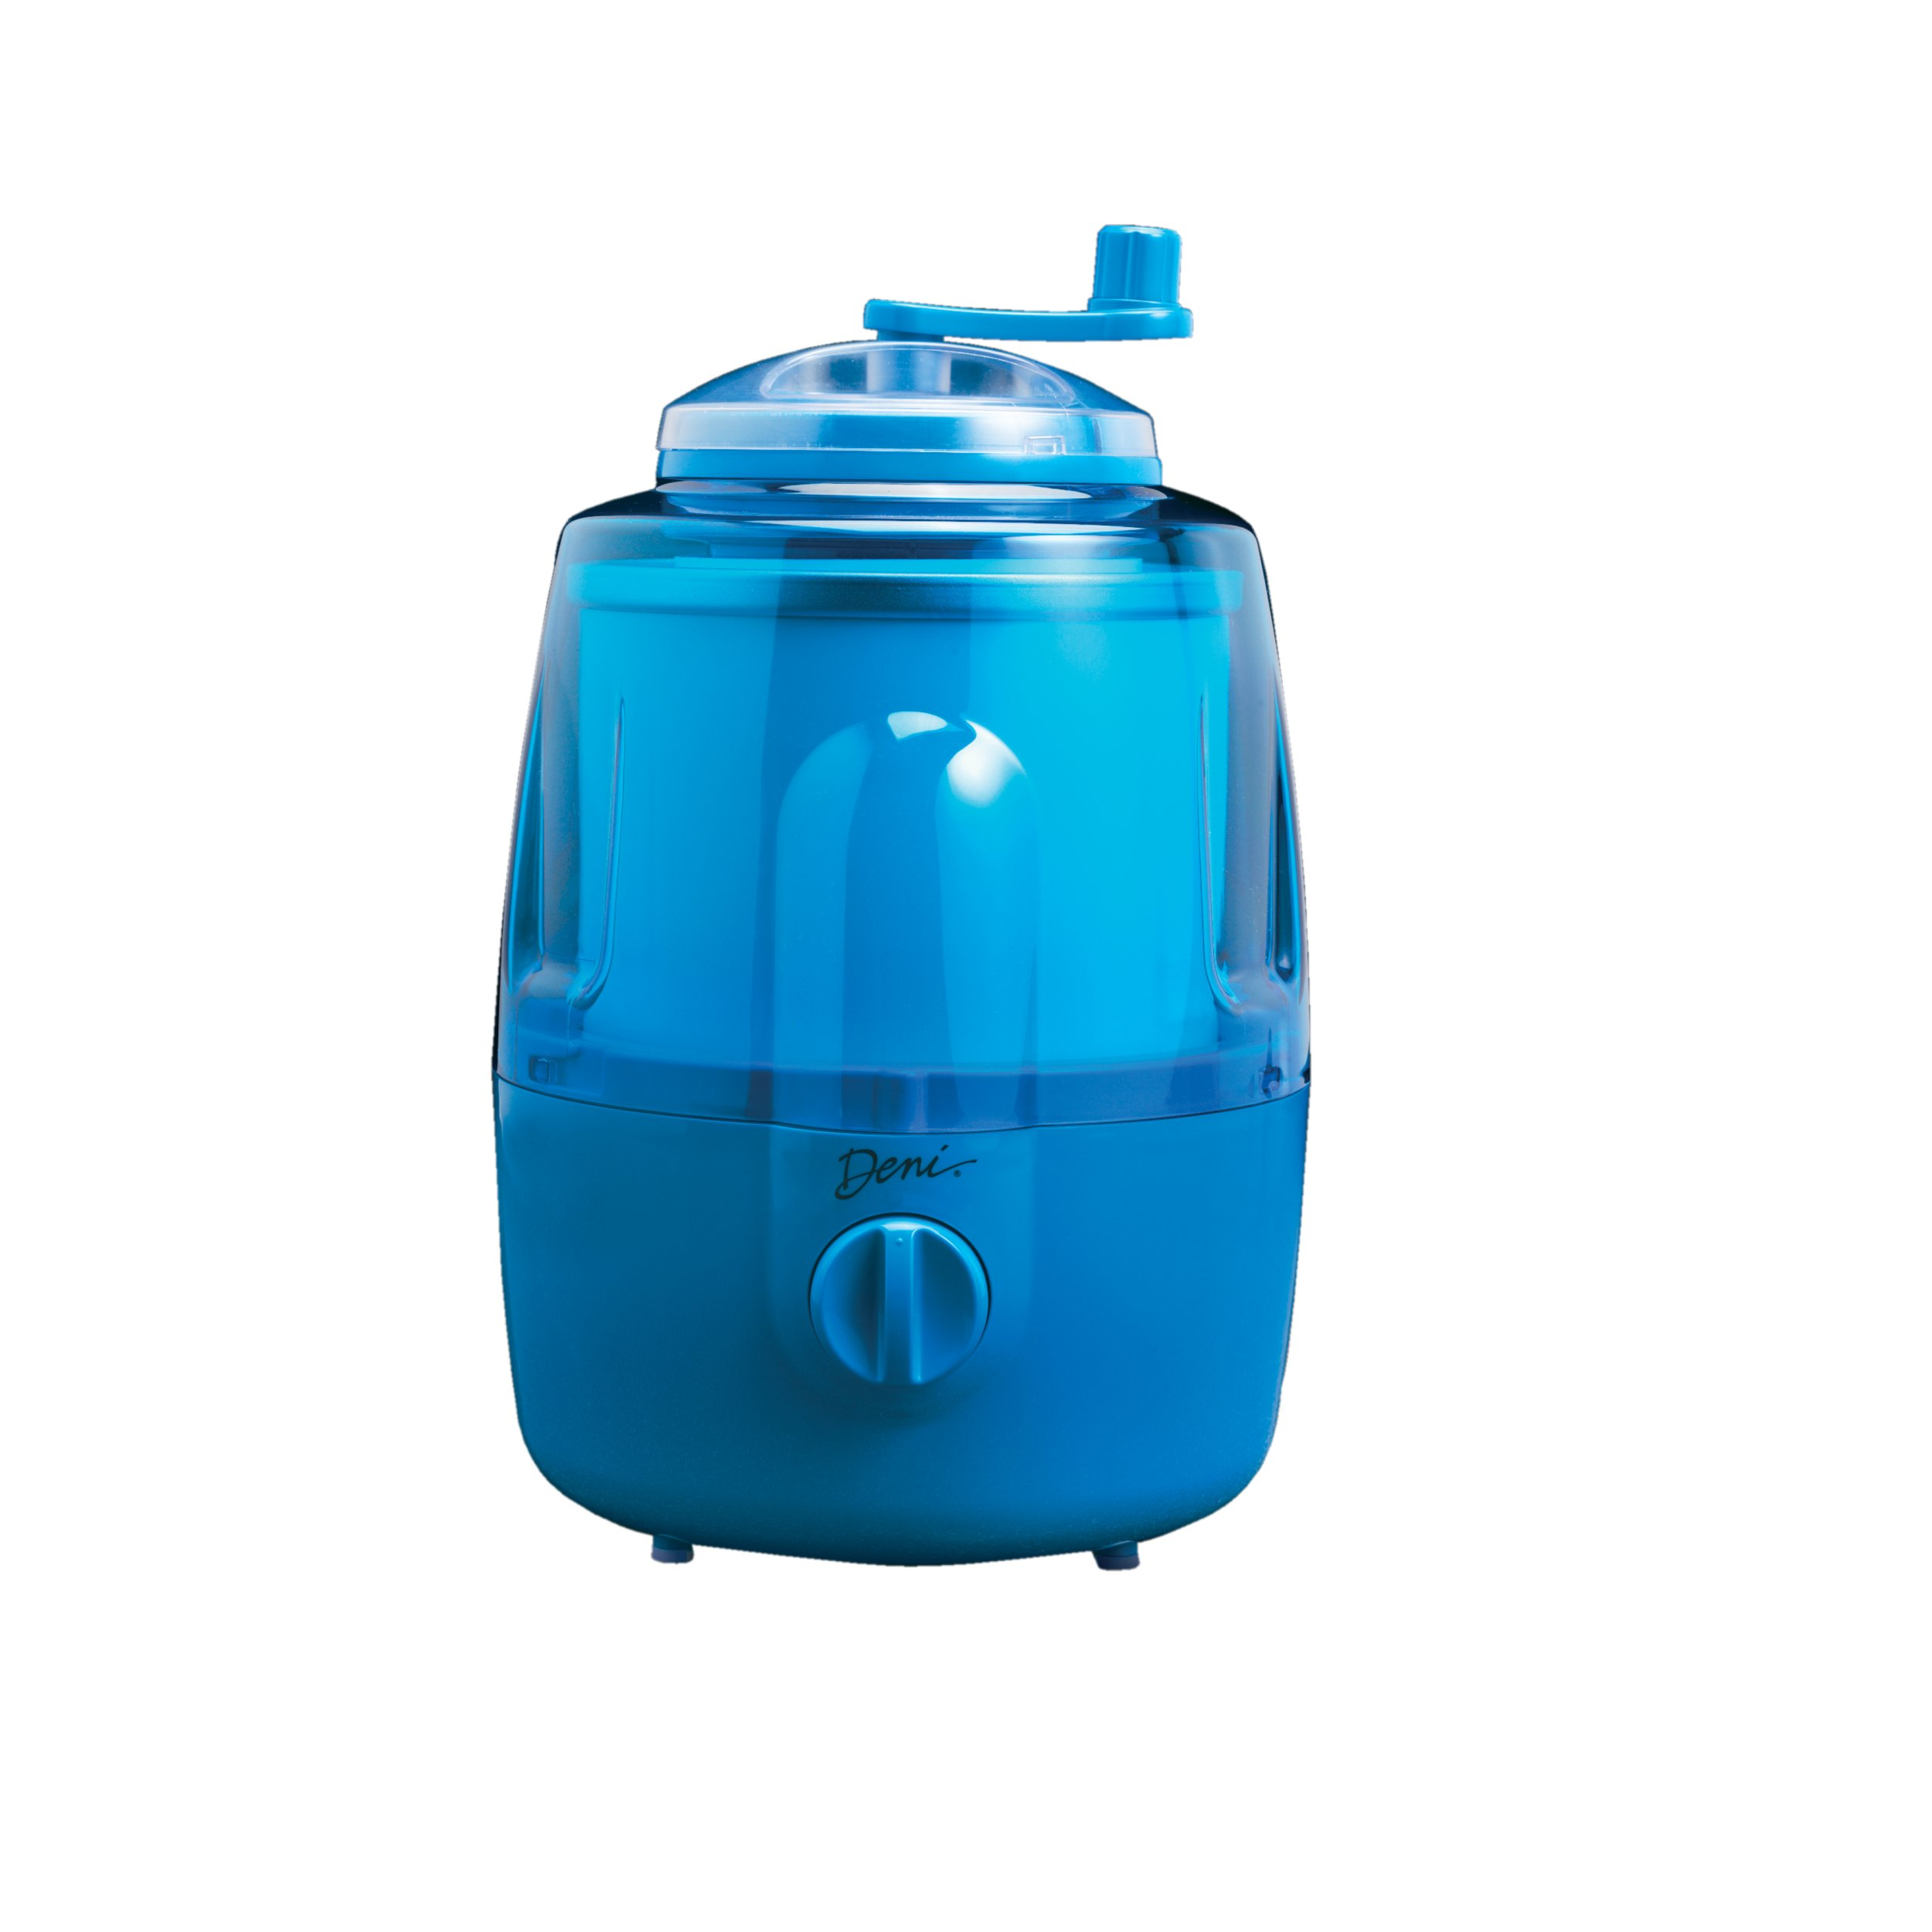 Deni 5201 Fully Automatic 1-1/2-Quart Ice-Cream Maker with Candy Crusher, Blueberry